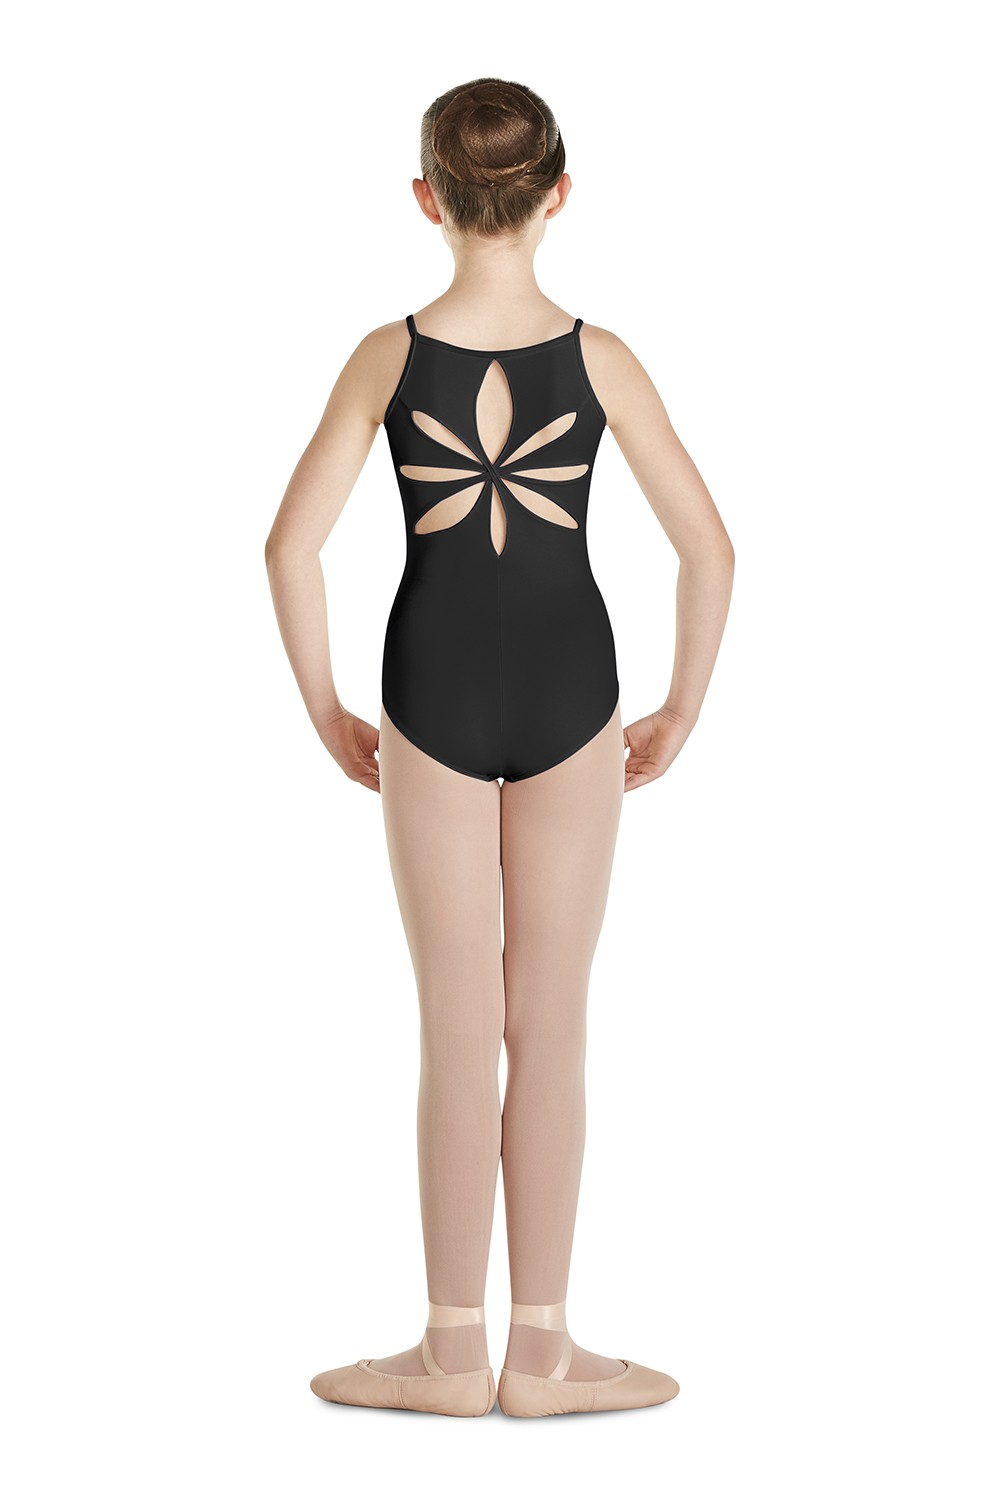 Flower Back Camisole Children's Dance Leotards